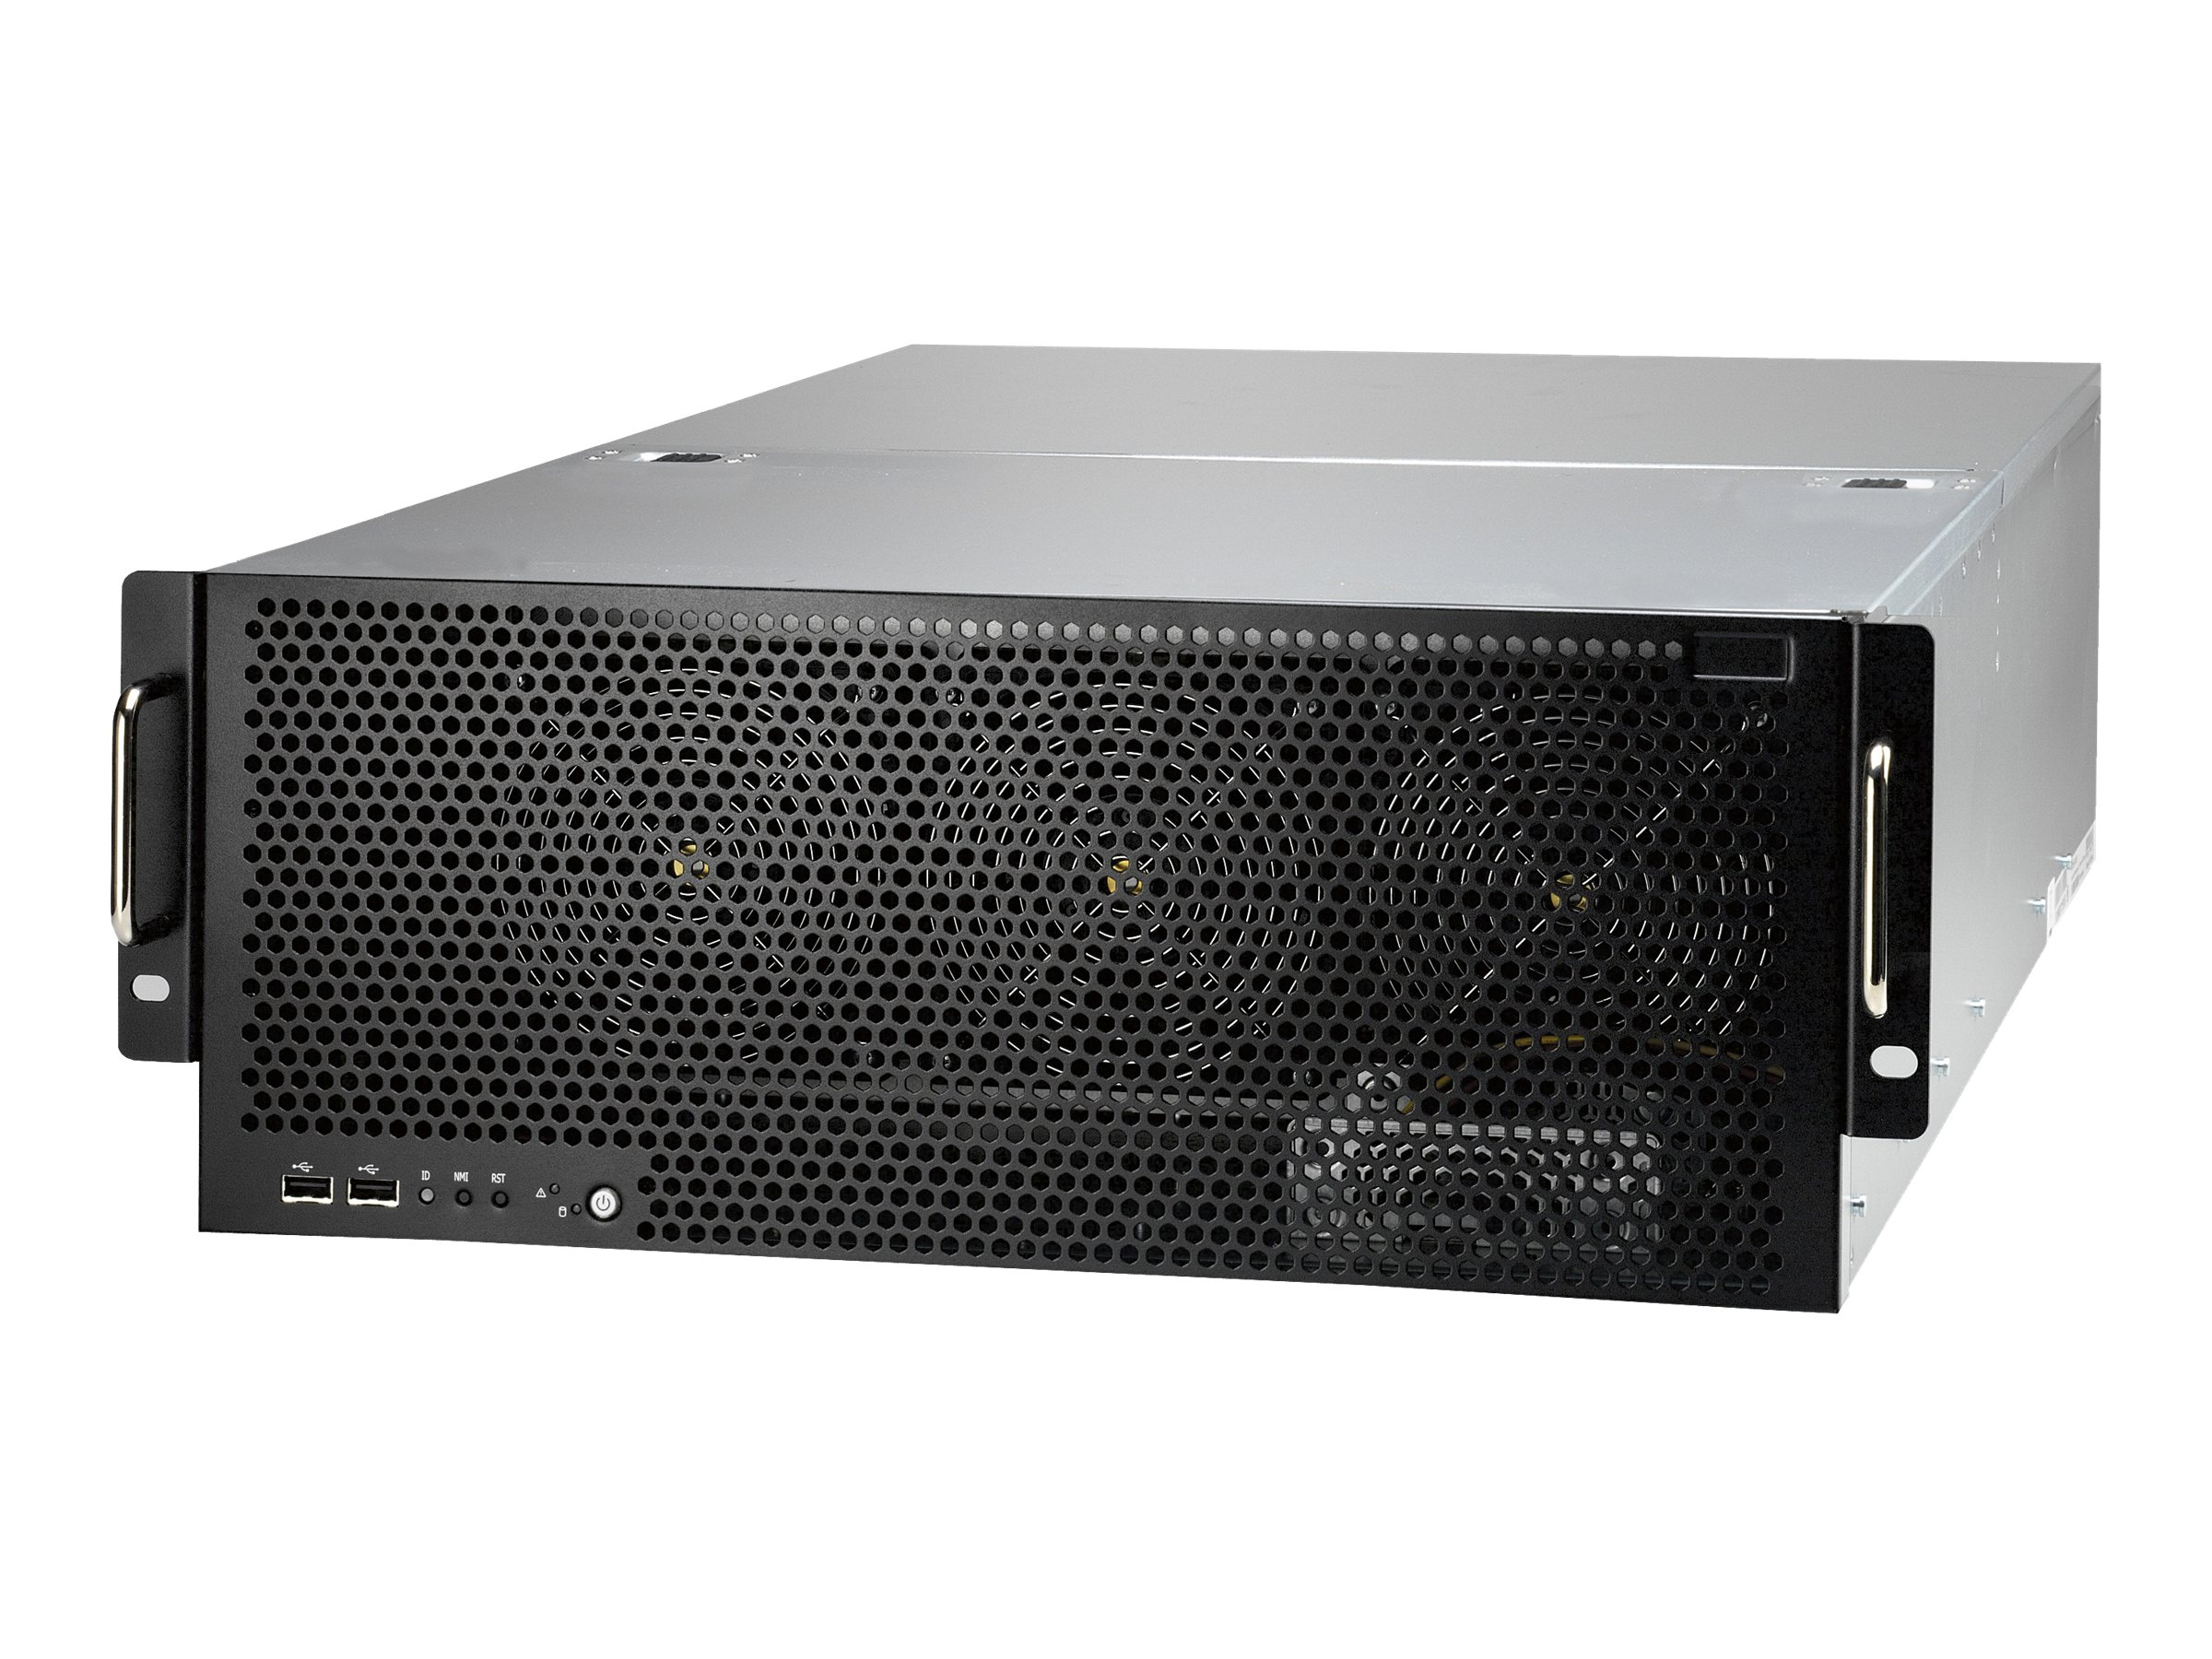 Tyan Barebone, FT77 4U RM, Intel 5520, Max 144GB DDR3, M2075, 2400W 2+1 RPS